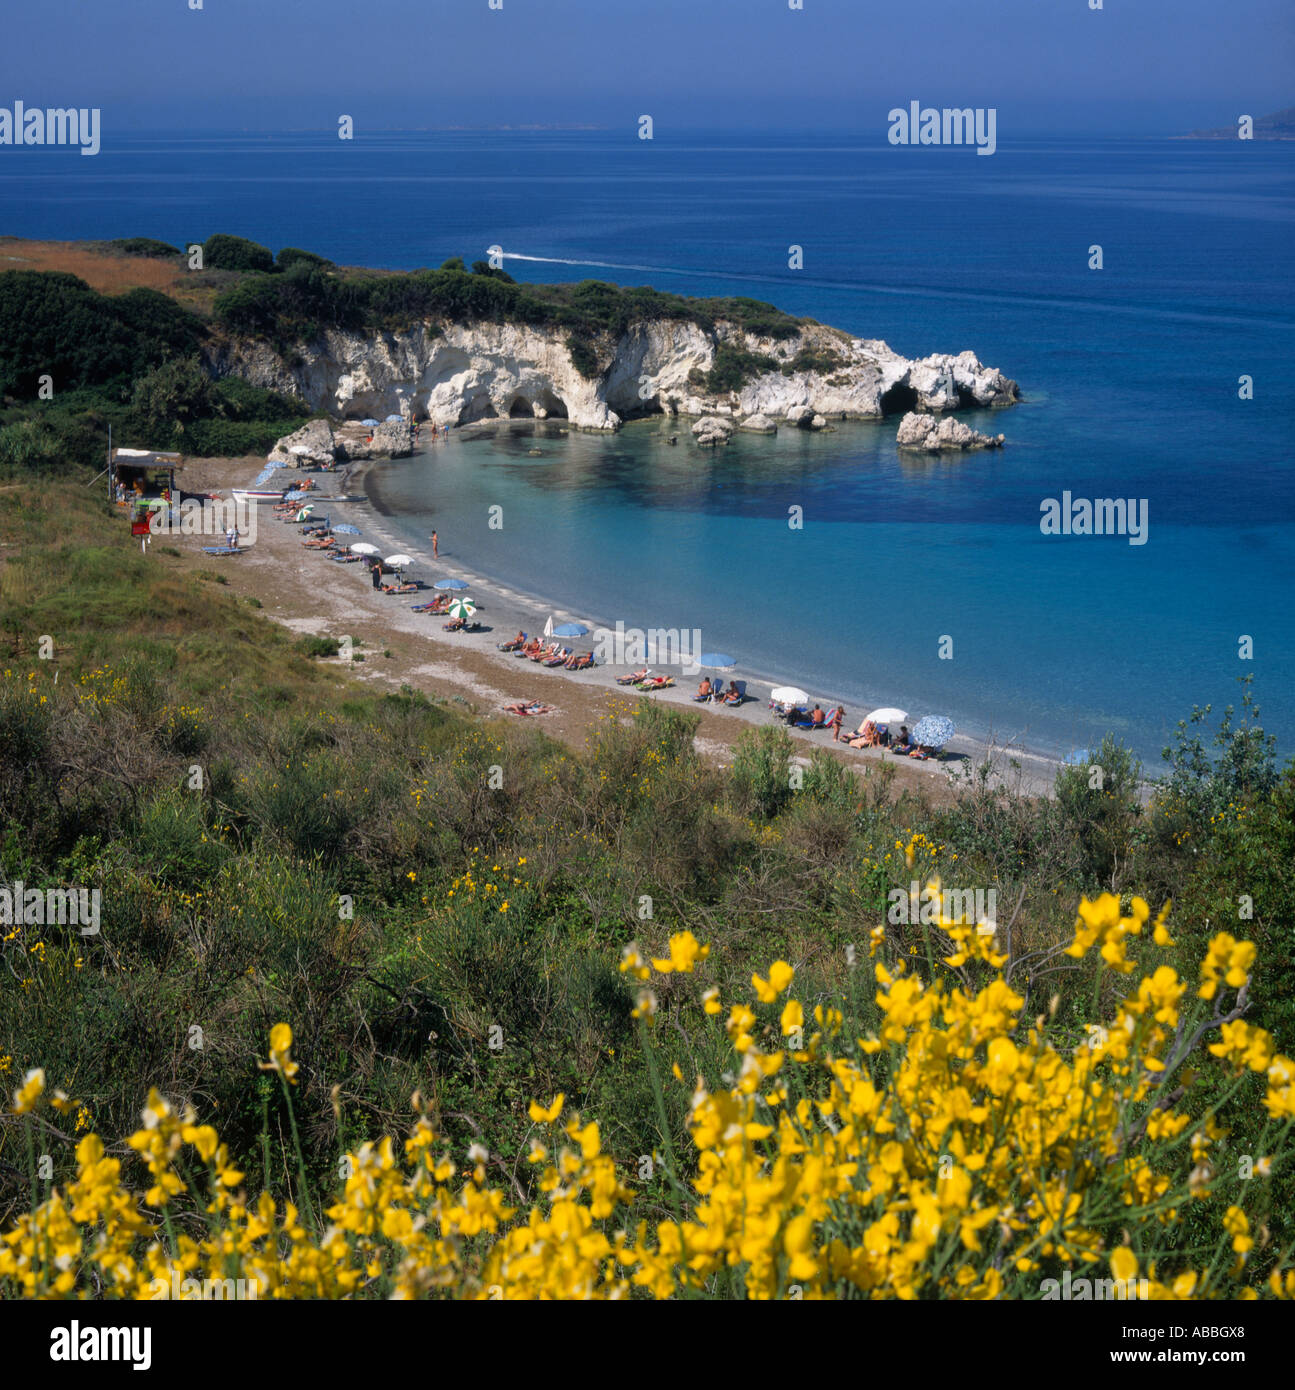 West Coast bay with sun-beds umbrellas people and yellow flowers in foreground Kalamia Beach Cephalonia Island Greek Islands - Stock Image